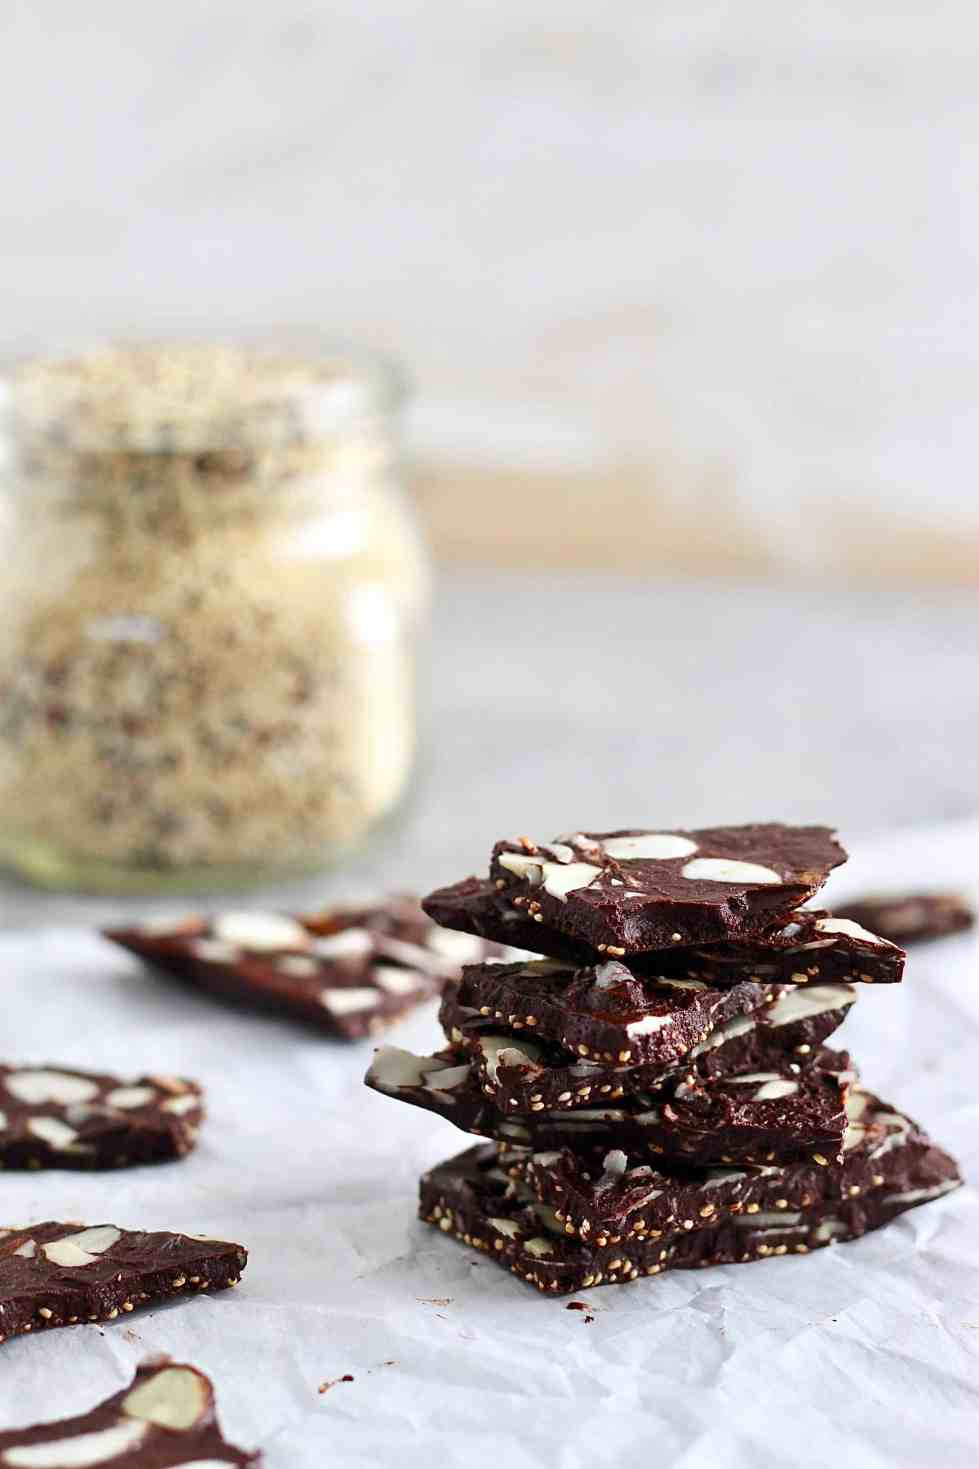 Quinoa crunch chocolate bark with a jar of quinoa in the background.